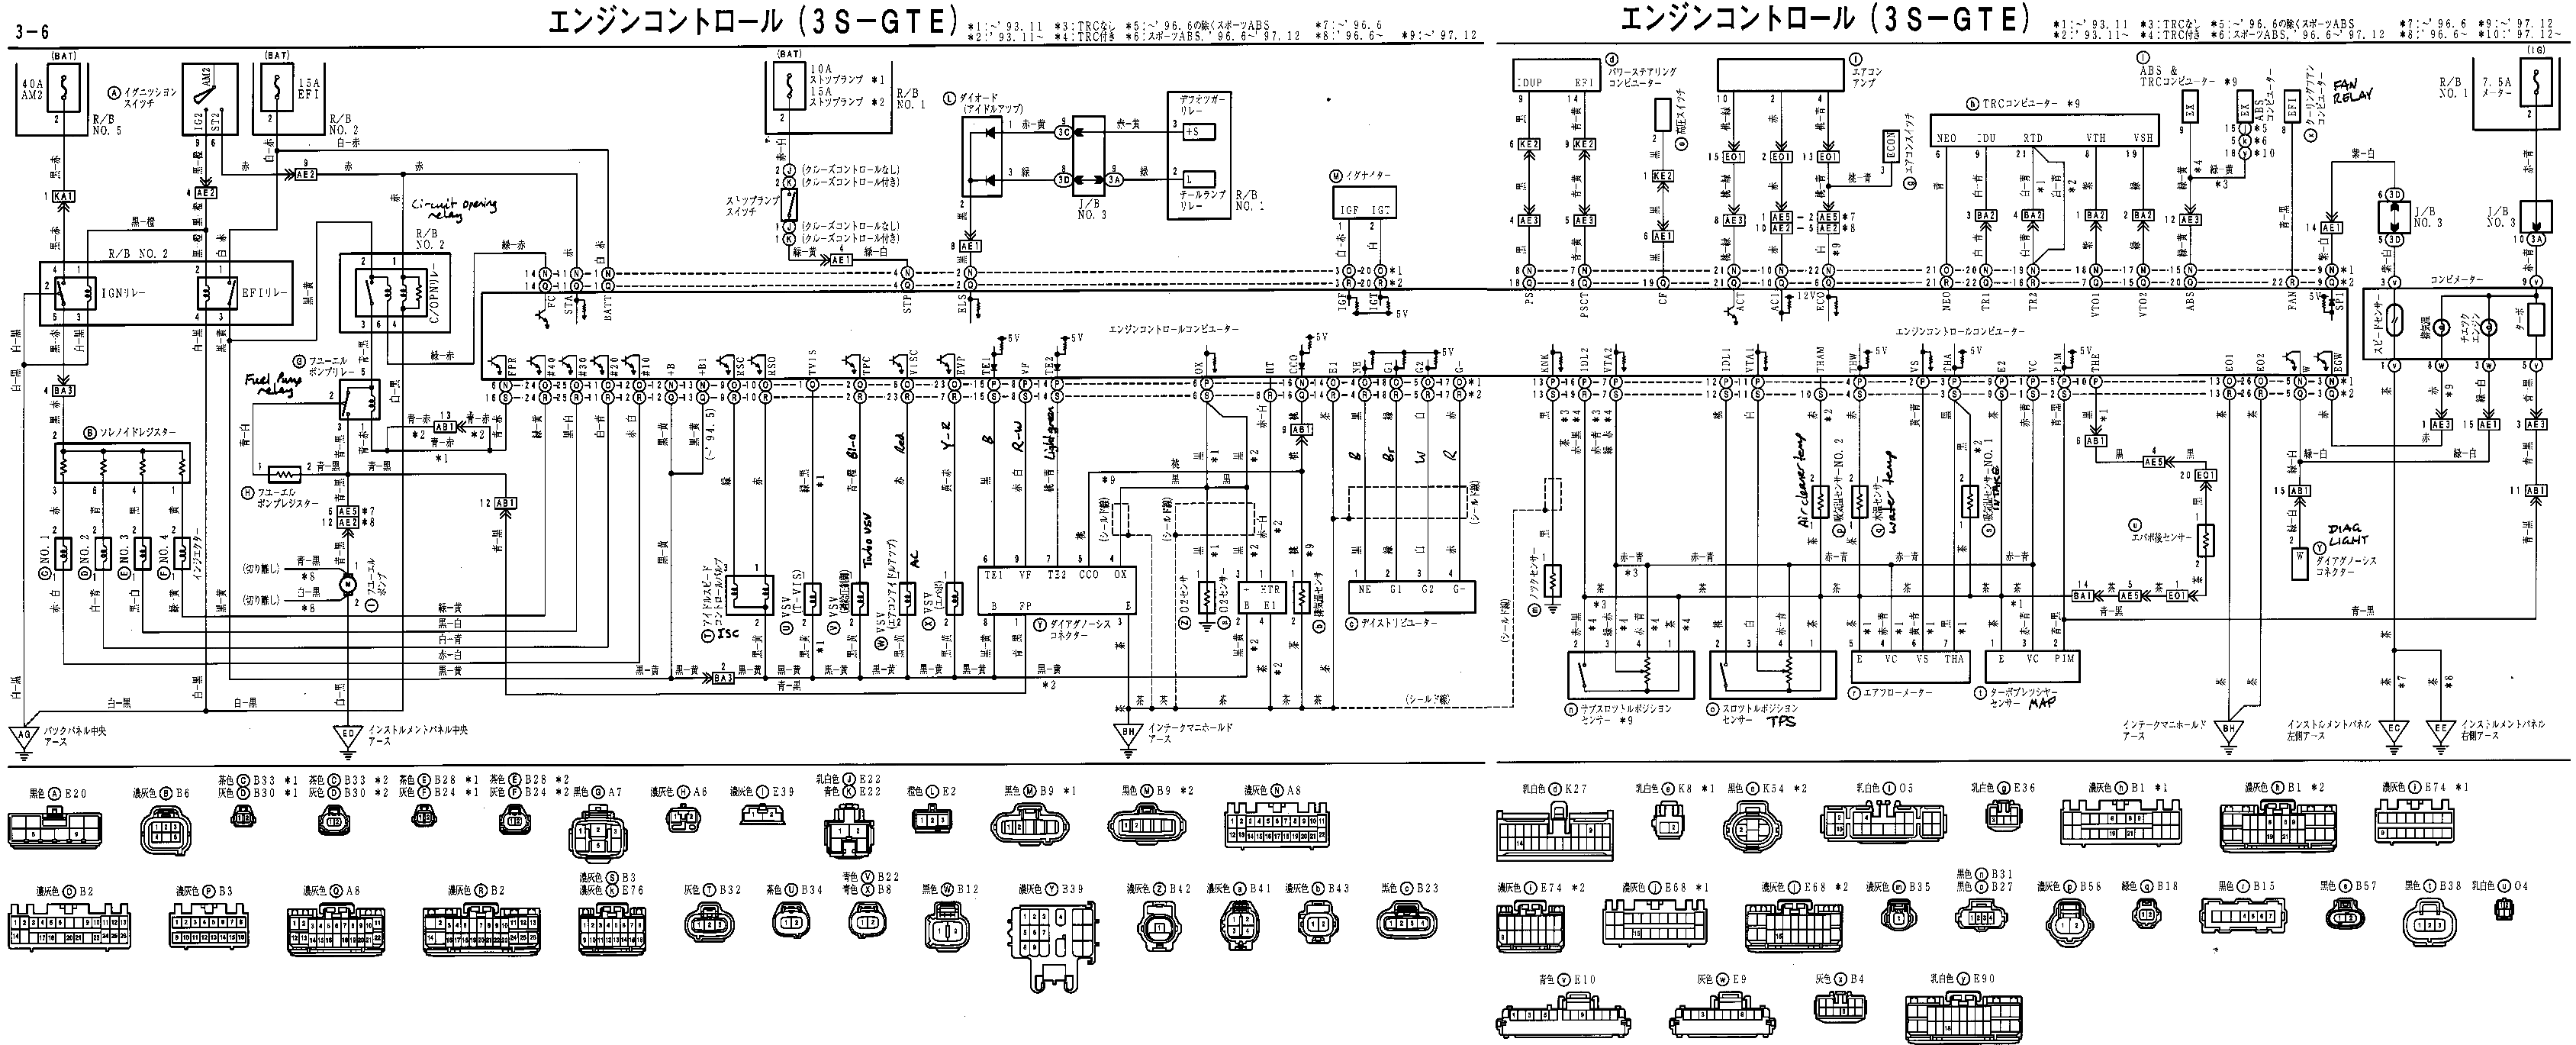 1995 toyota celica part diagram wiring schematic